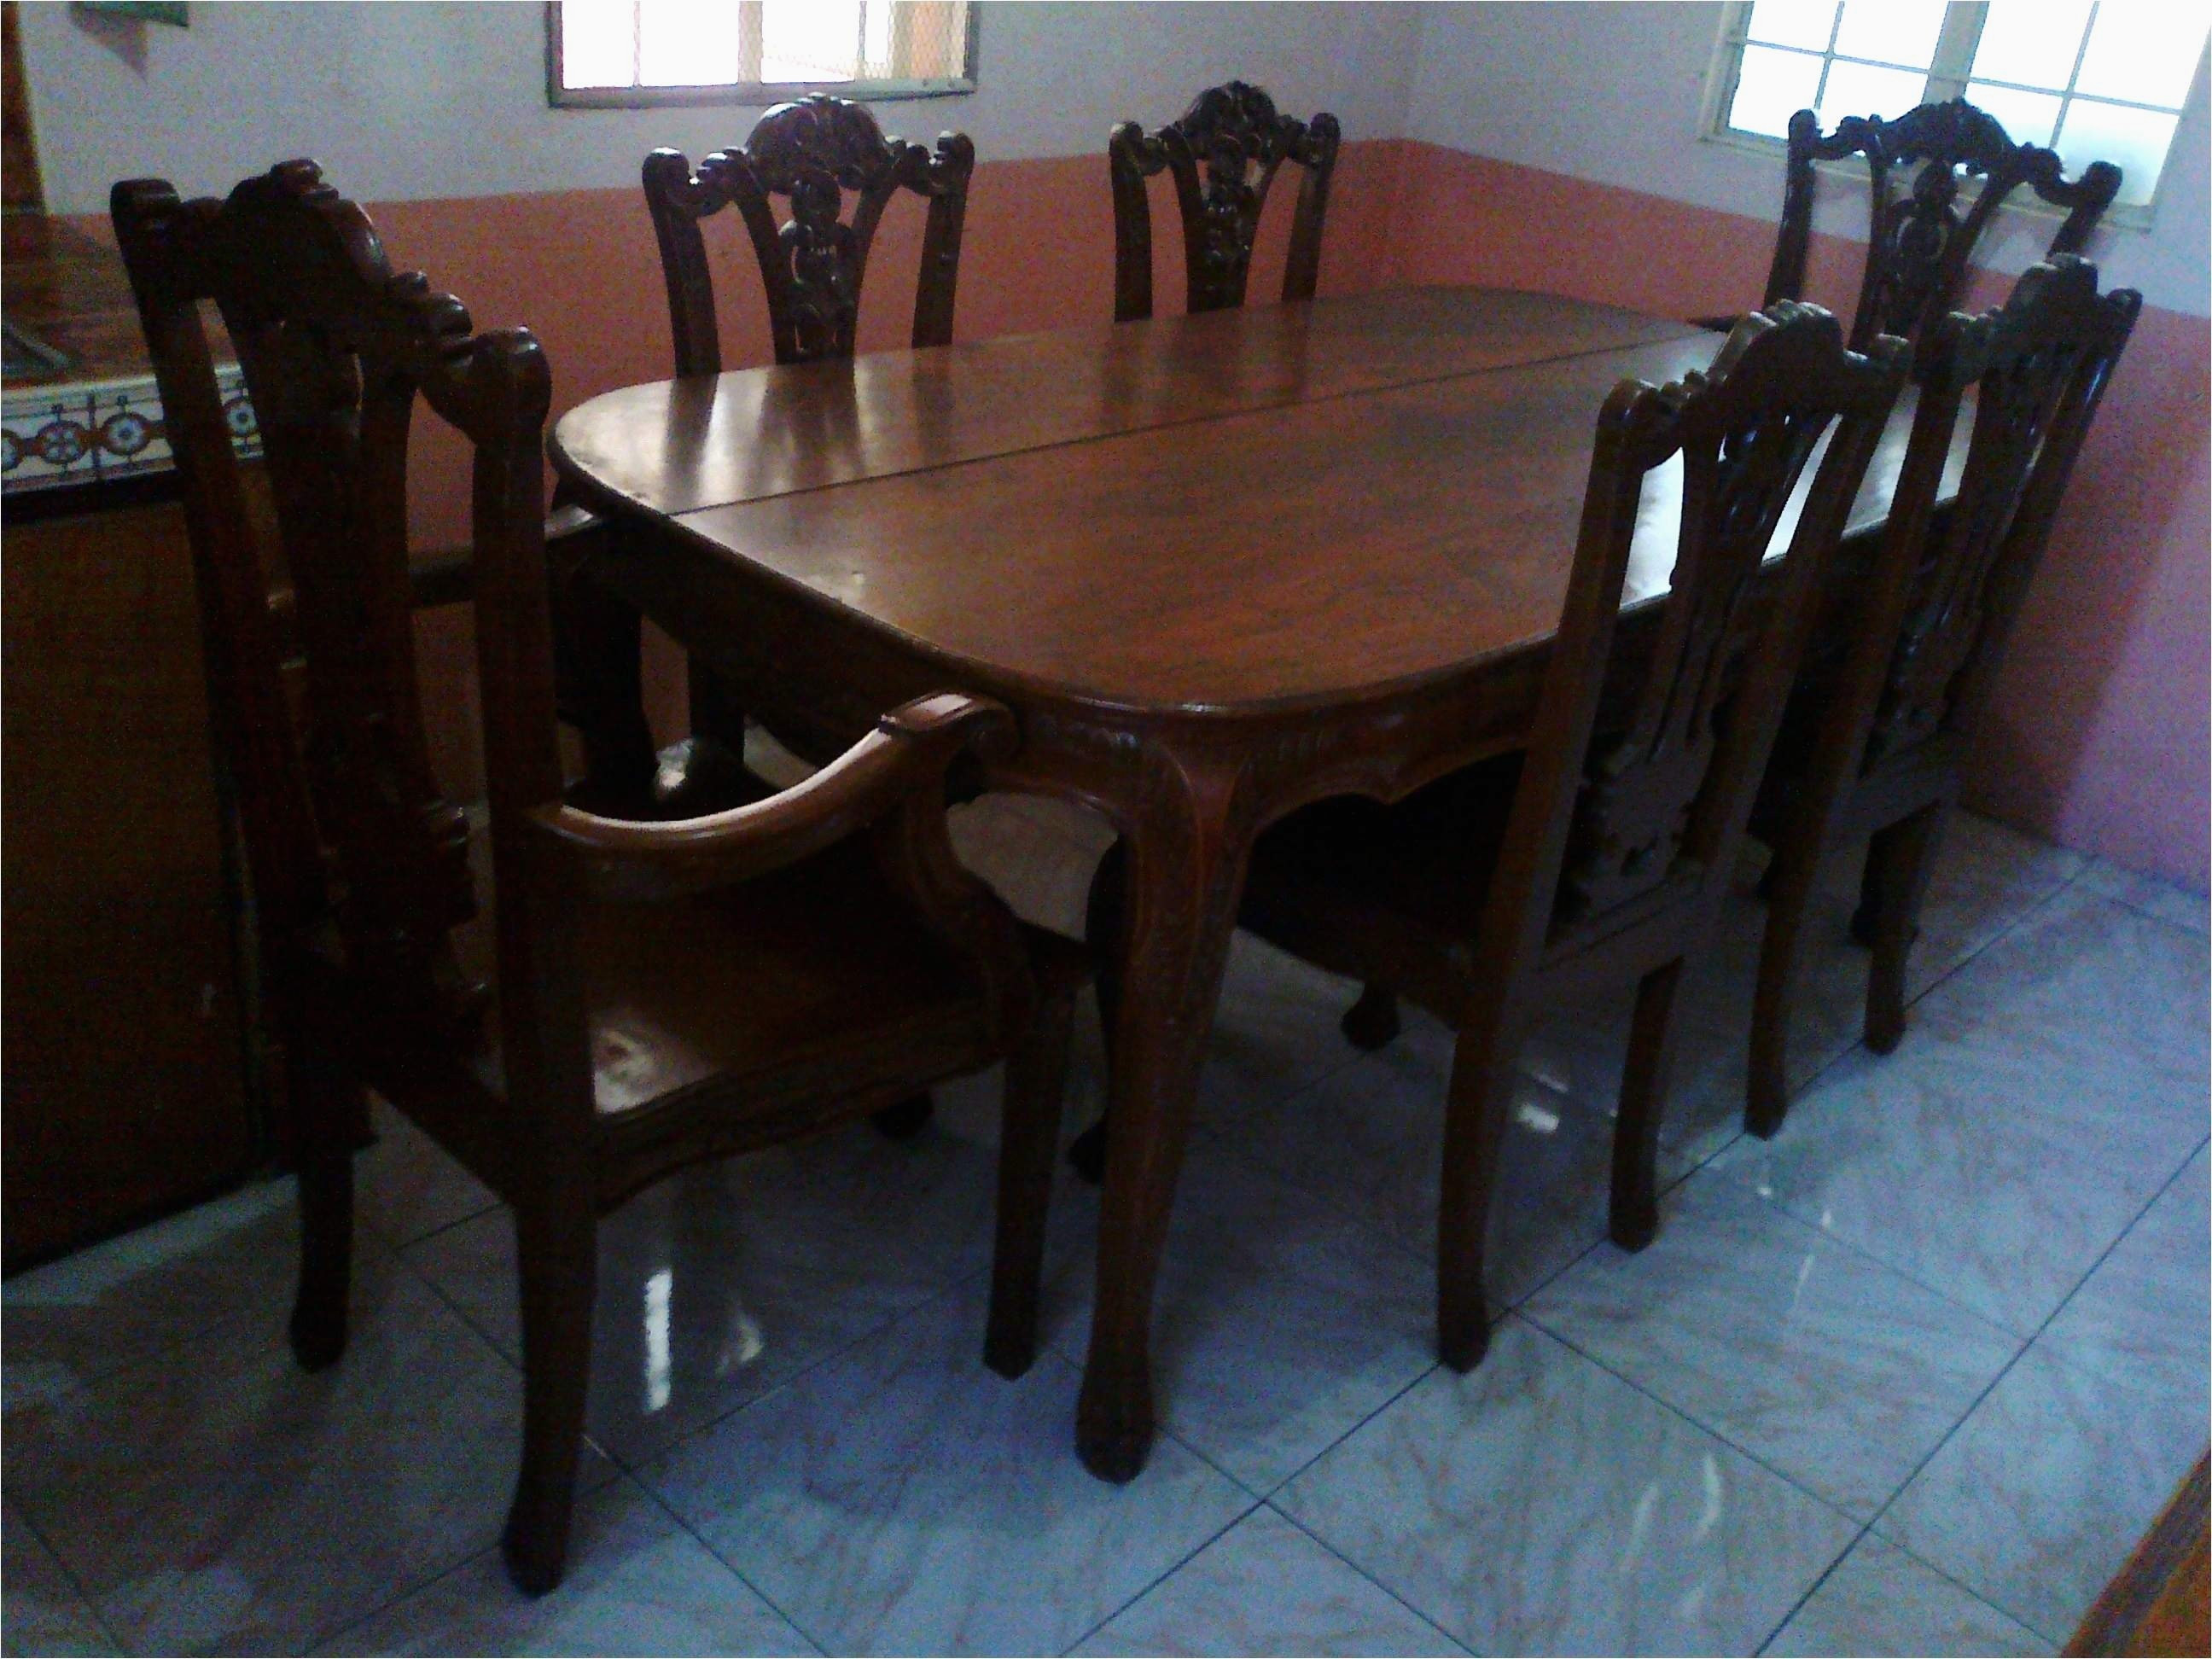 16 Famous Hardwood Flooring Nanaimo 2021 free download hardwood flooring nanaimo of 21 lovely used dining table and chairs sale welovedandelion com with regard to used dining table and chairs sale fresh 19 modest rustic dining tables for sale st